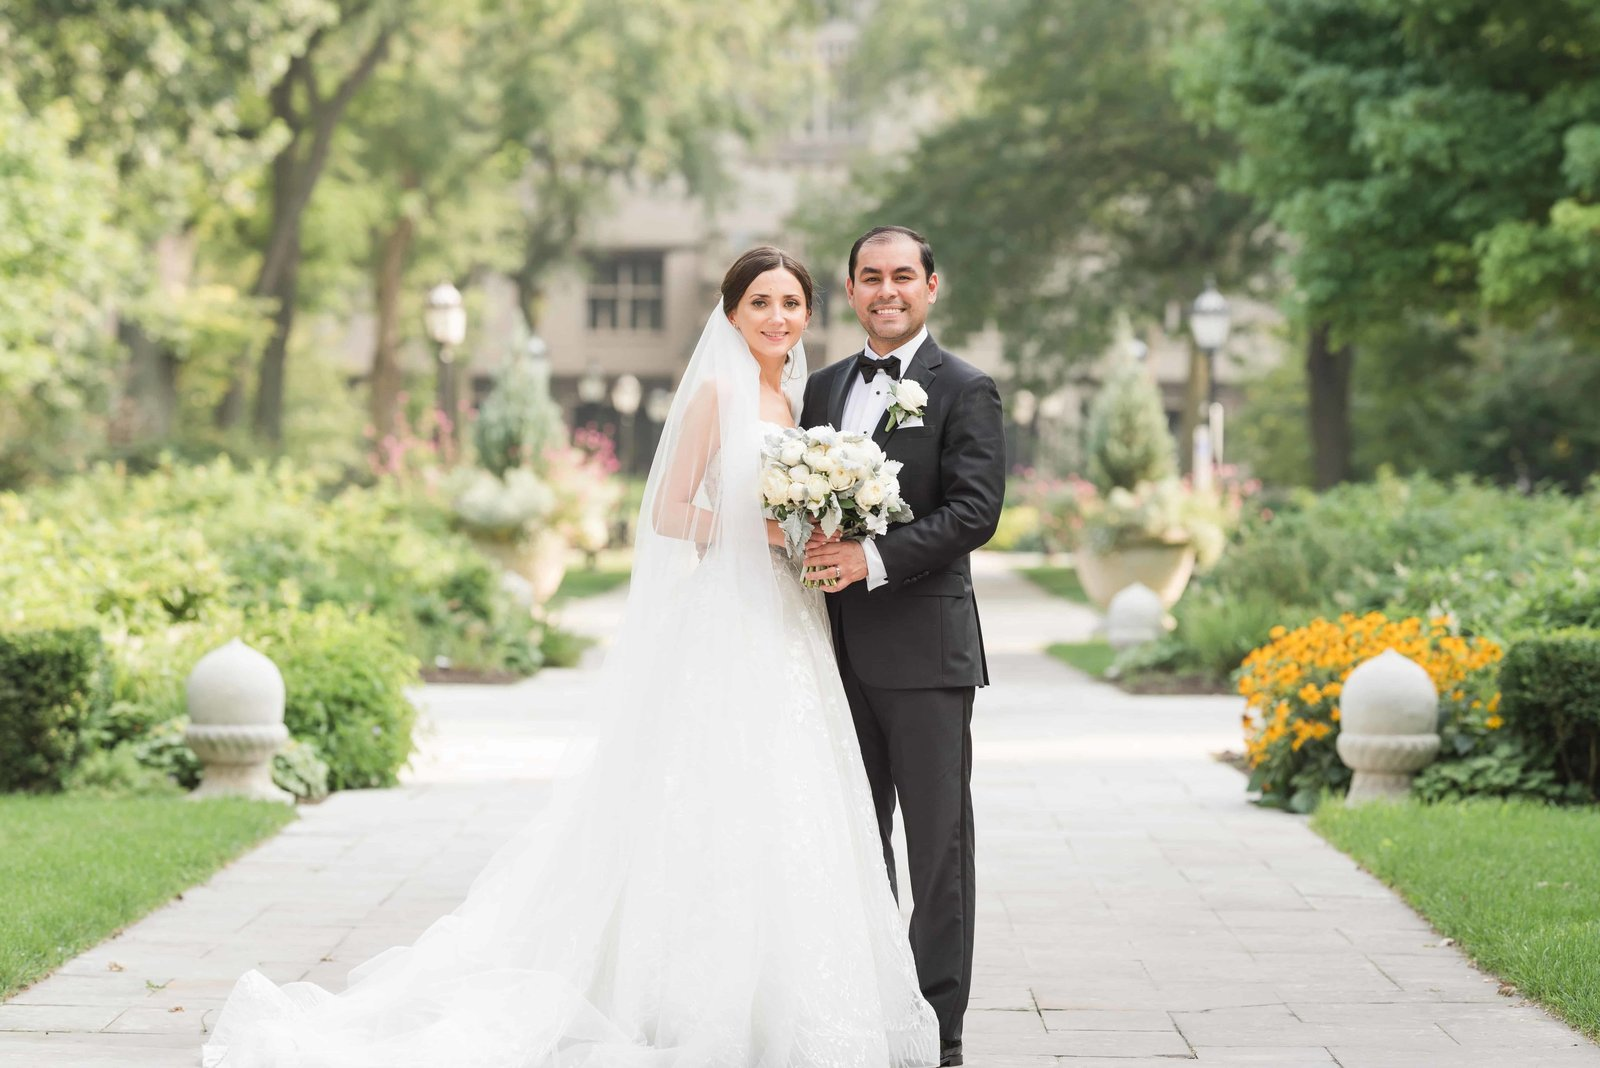 Autumn wedding day portrait at the University of Chicago Campus